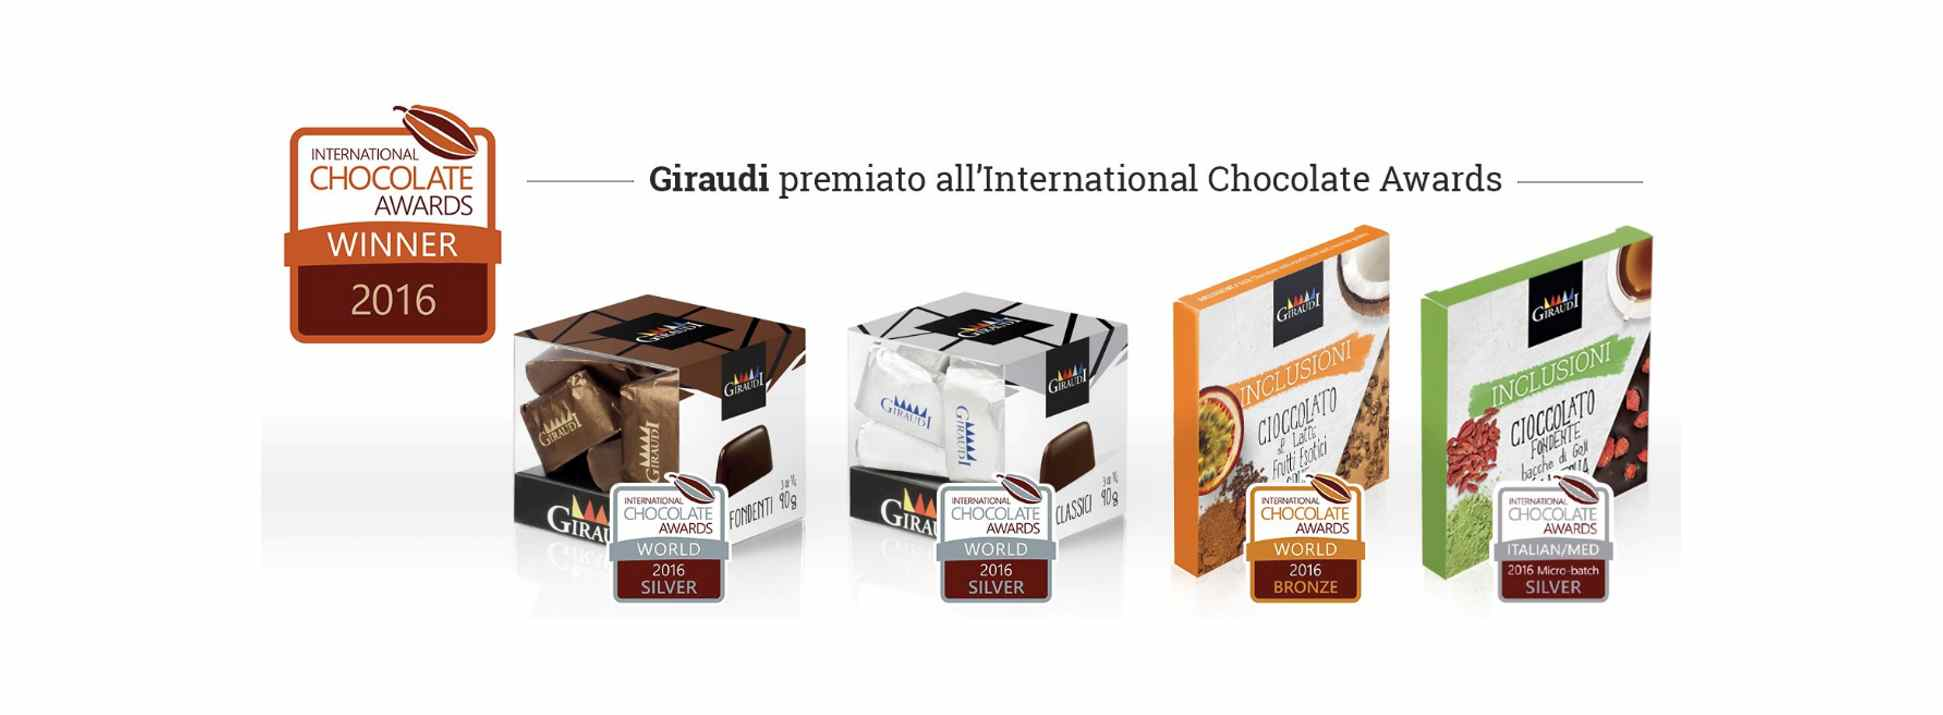 giraudi-intenrational-chocolate-awards